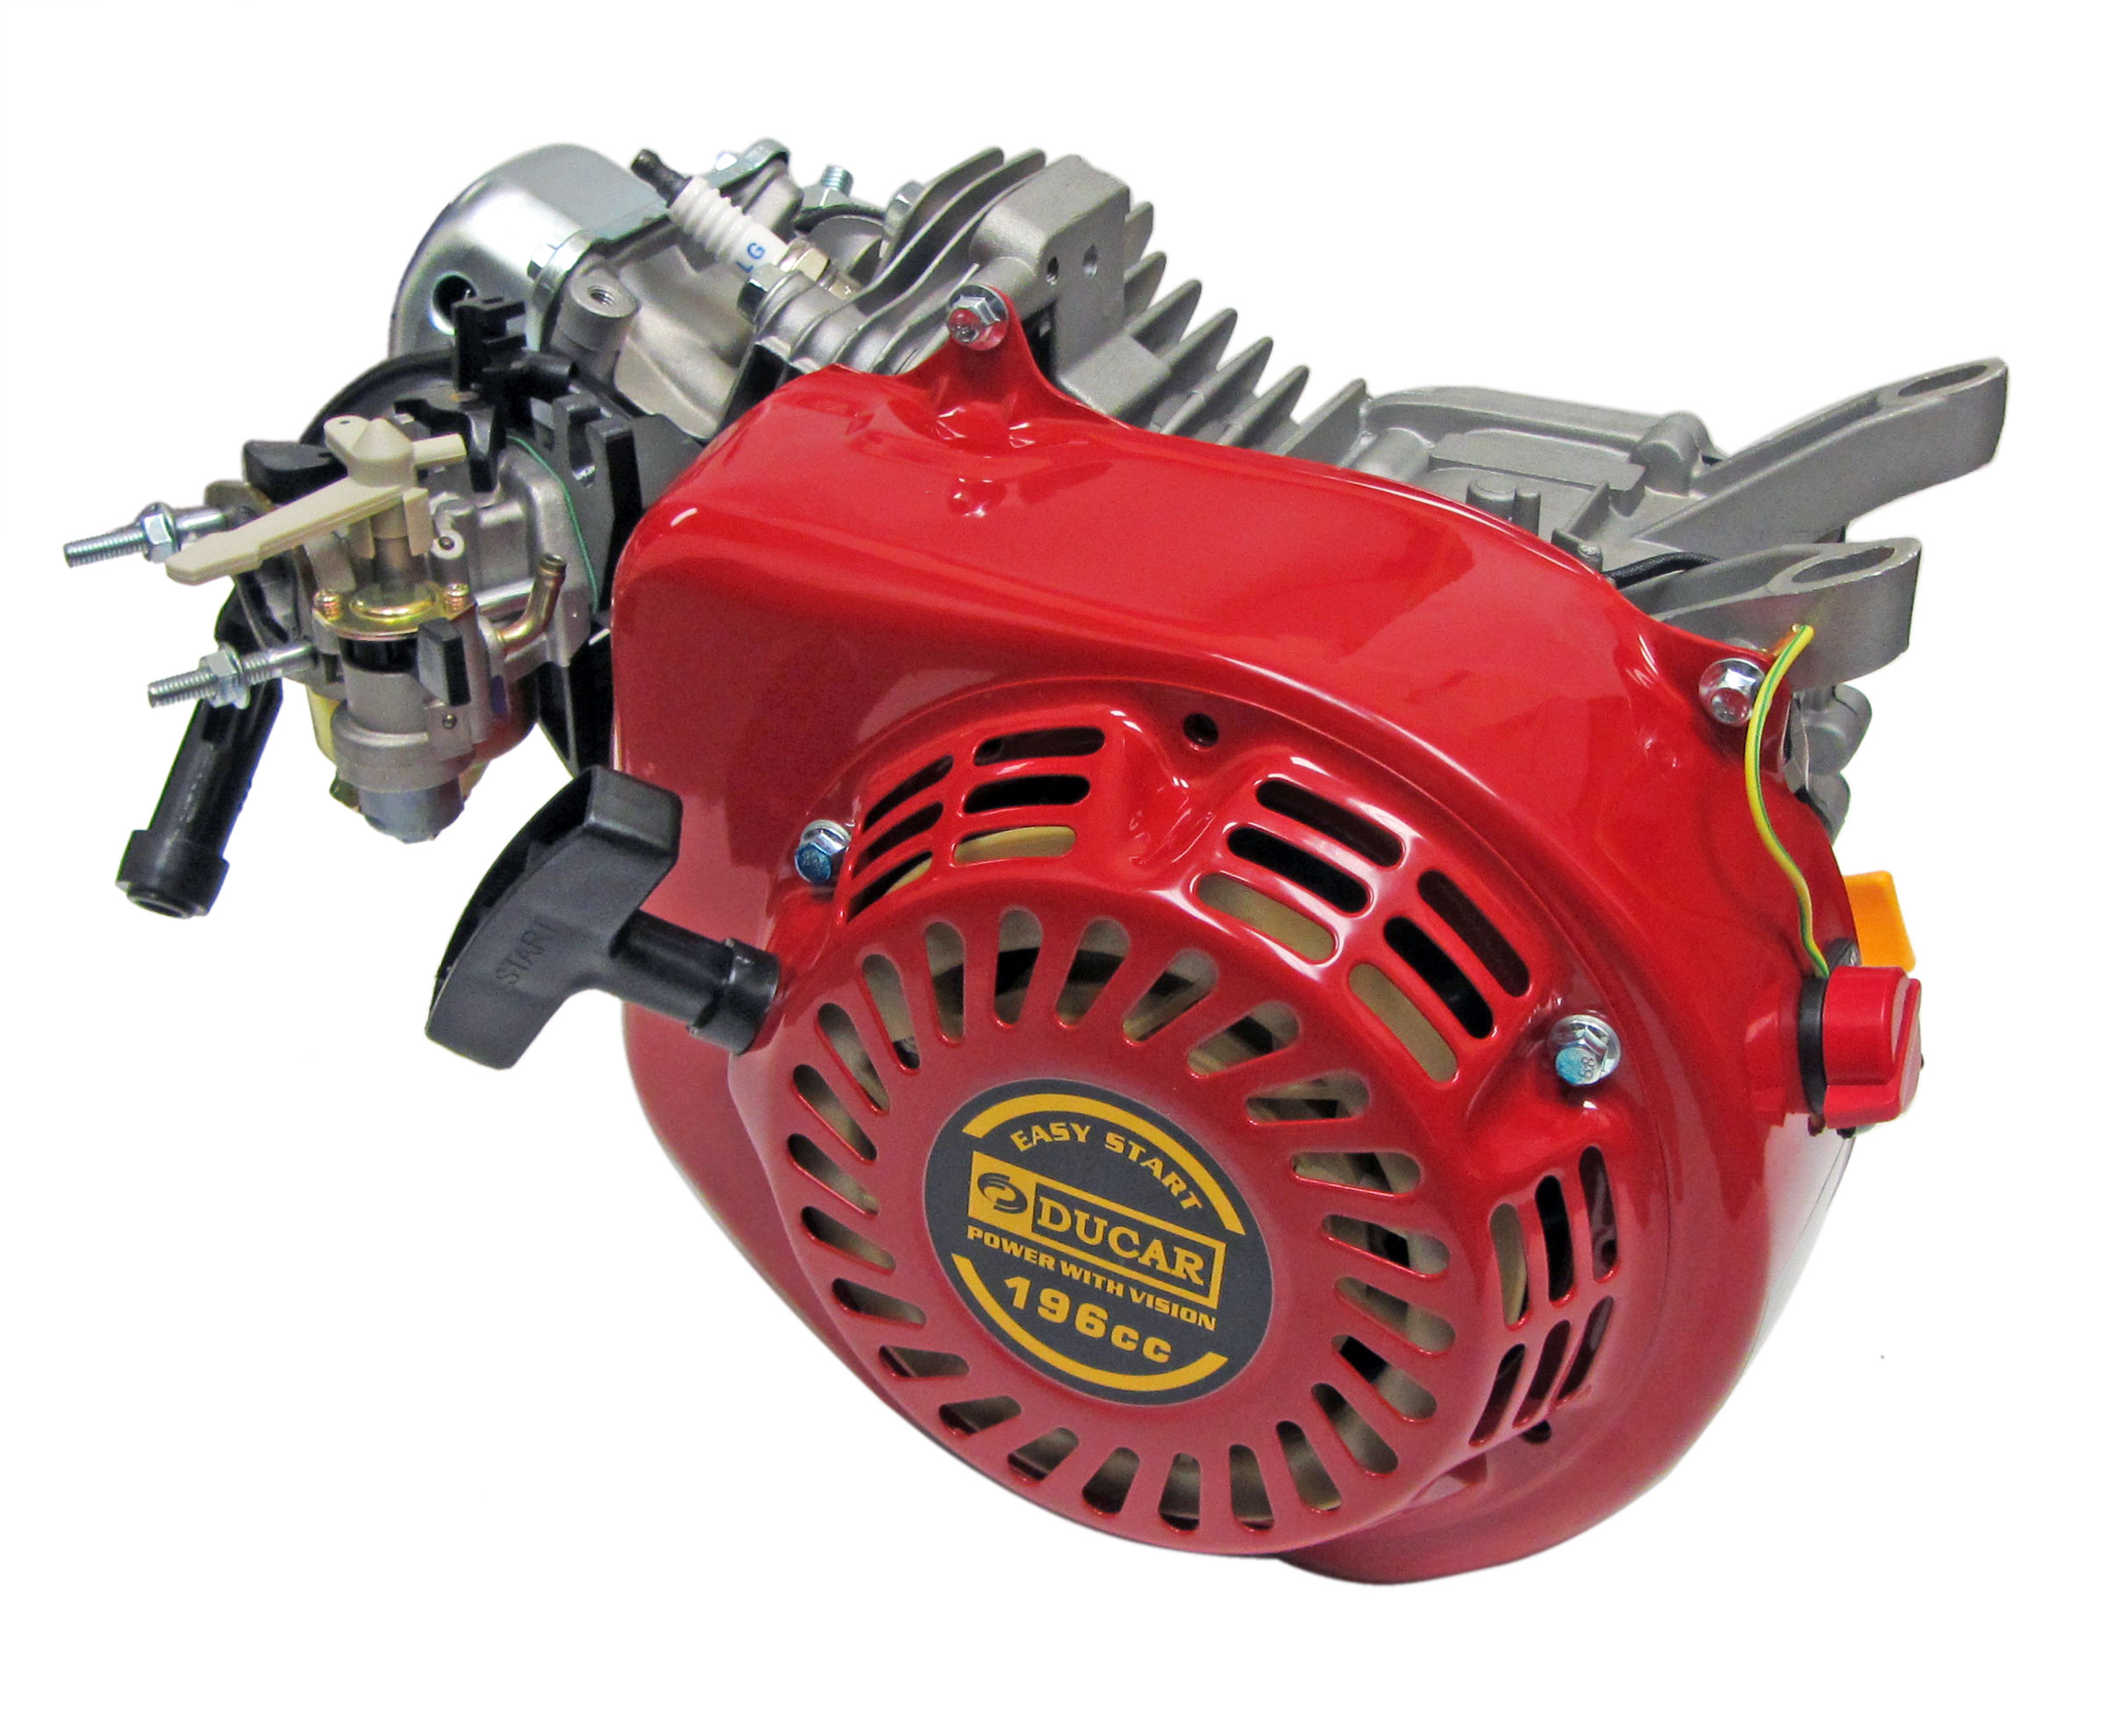 Red Ducar 196cc Ohv Clone Engine 200800 Bmi Karts And